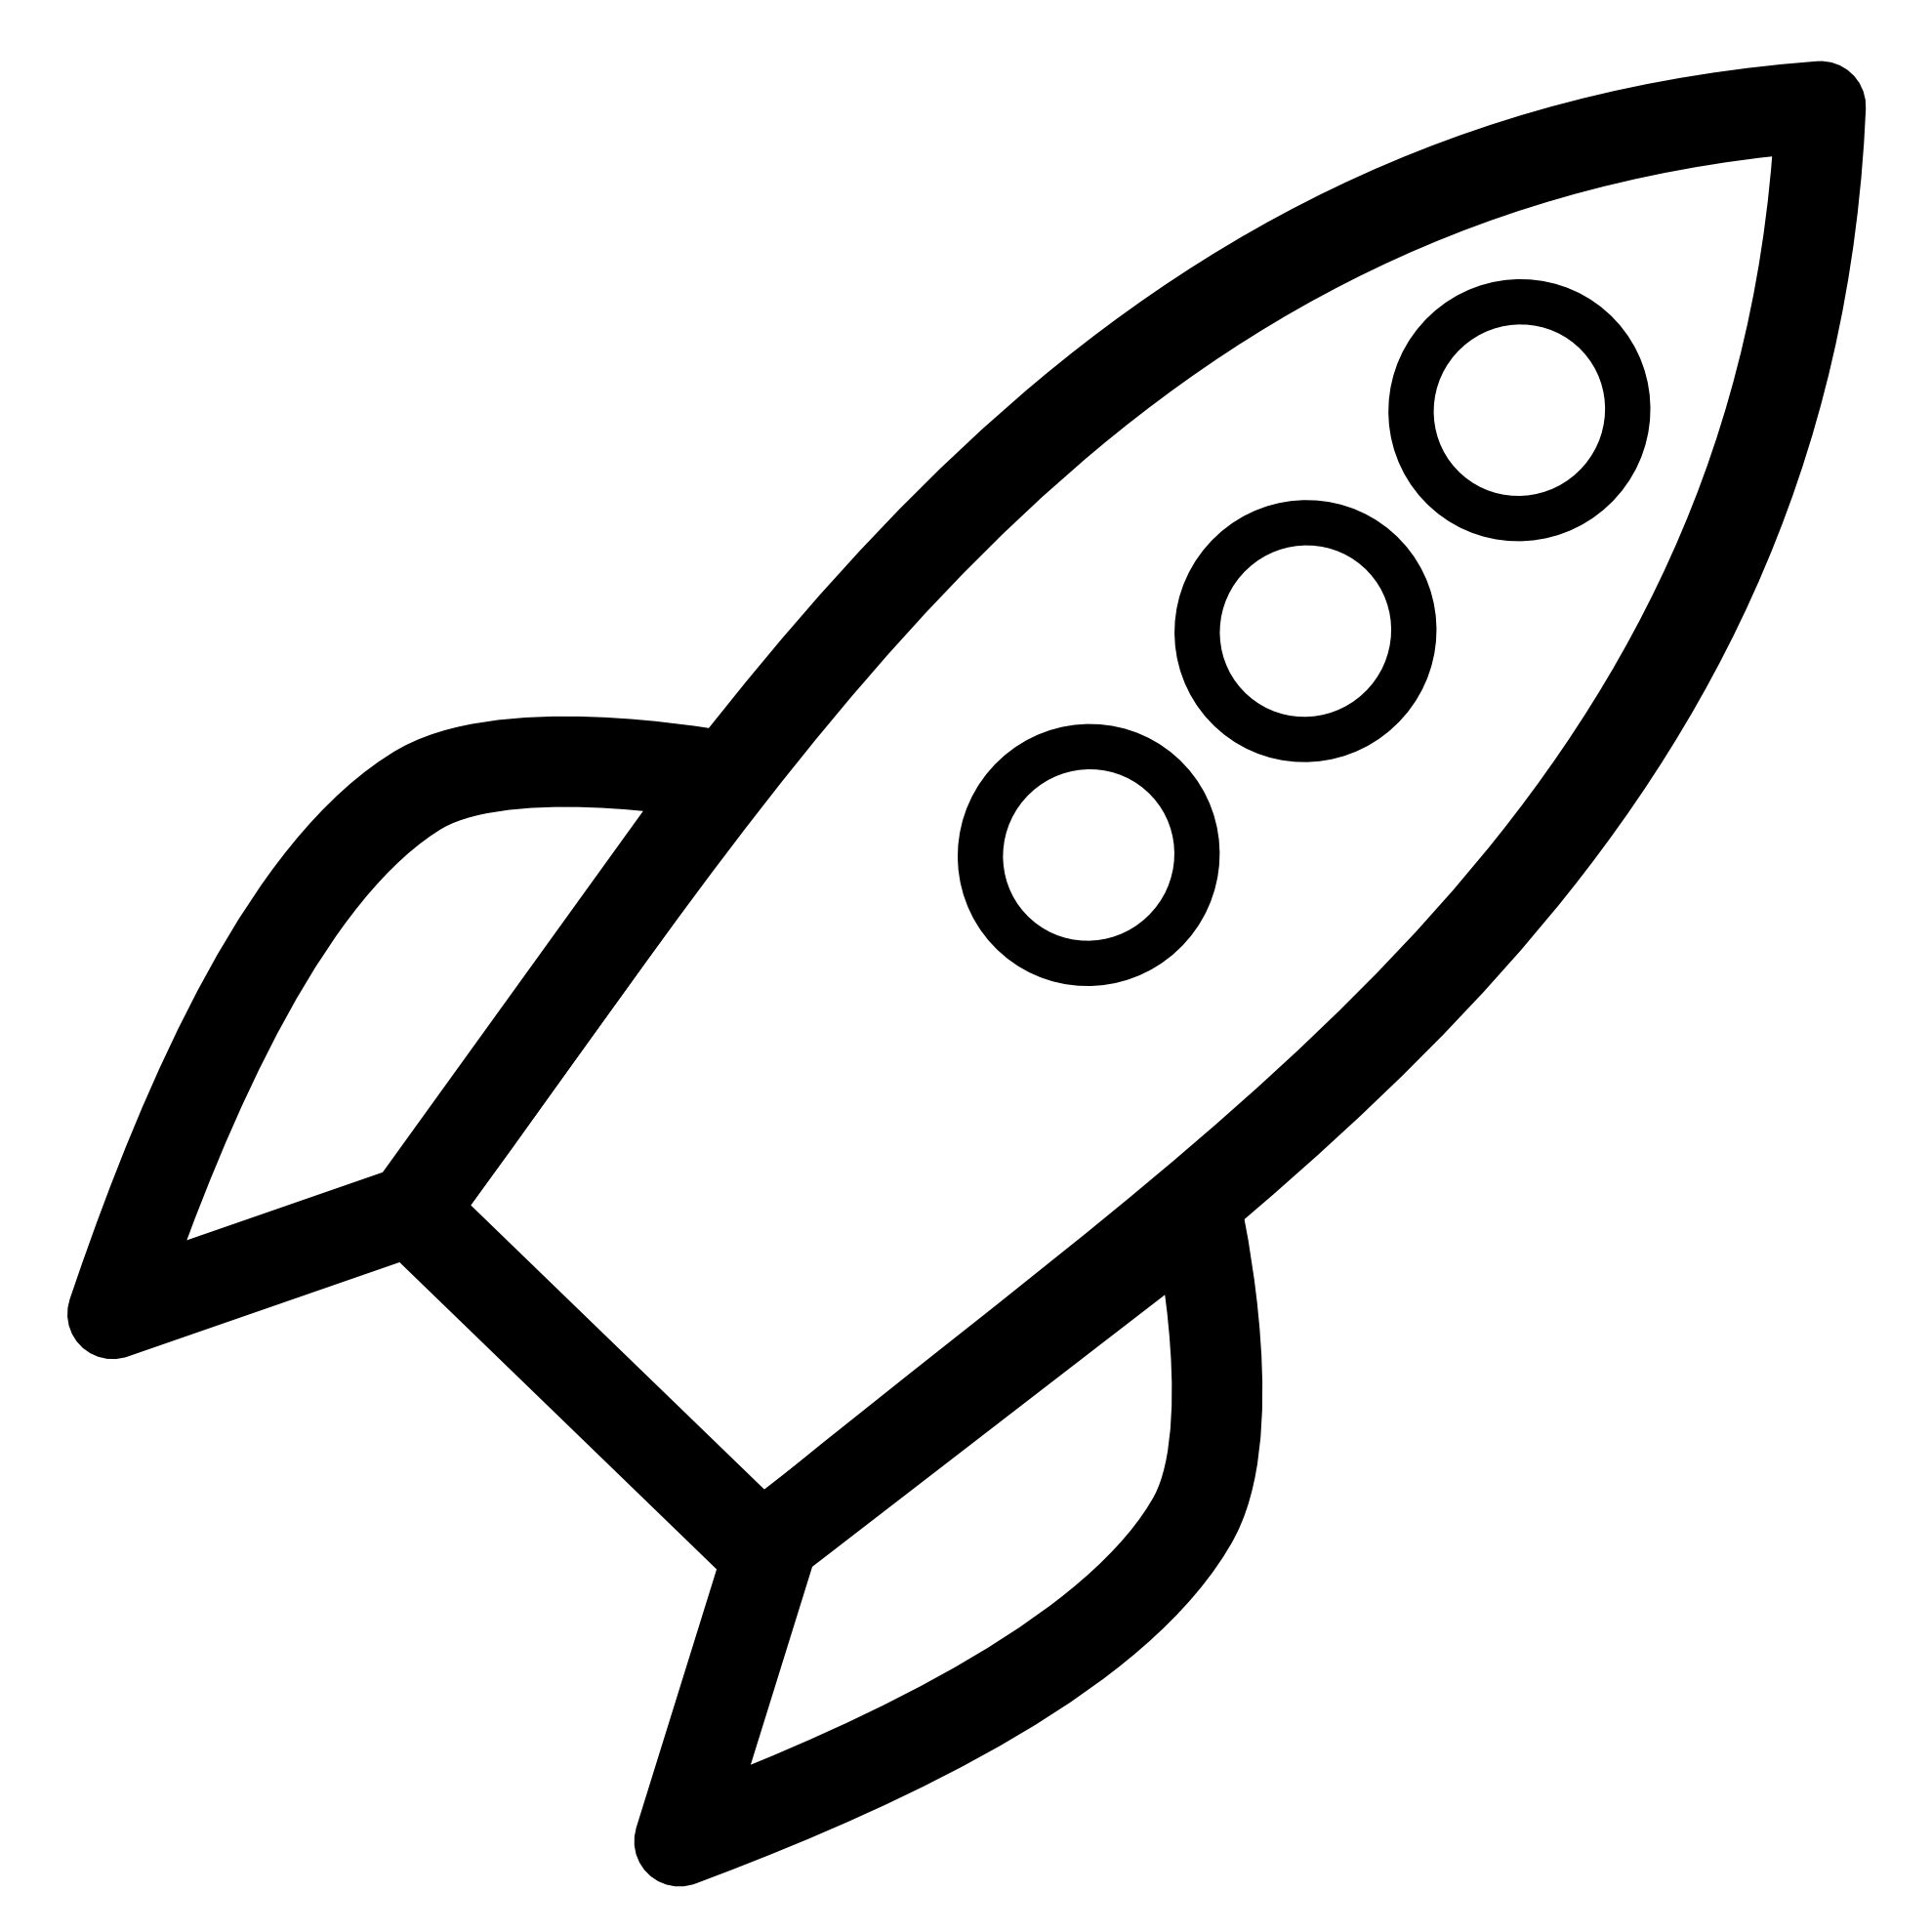 Rocket Clipart Black And White Clipart Panda